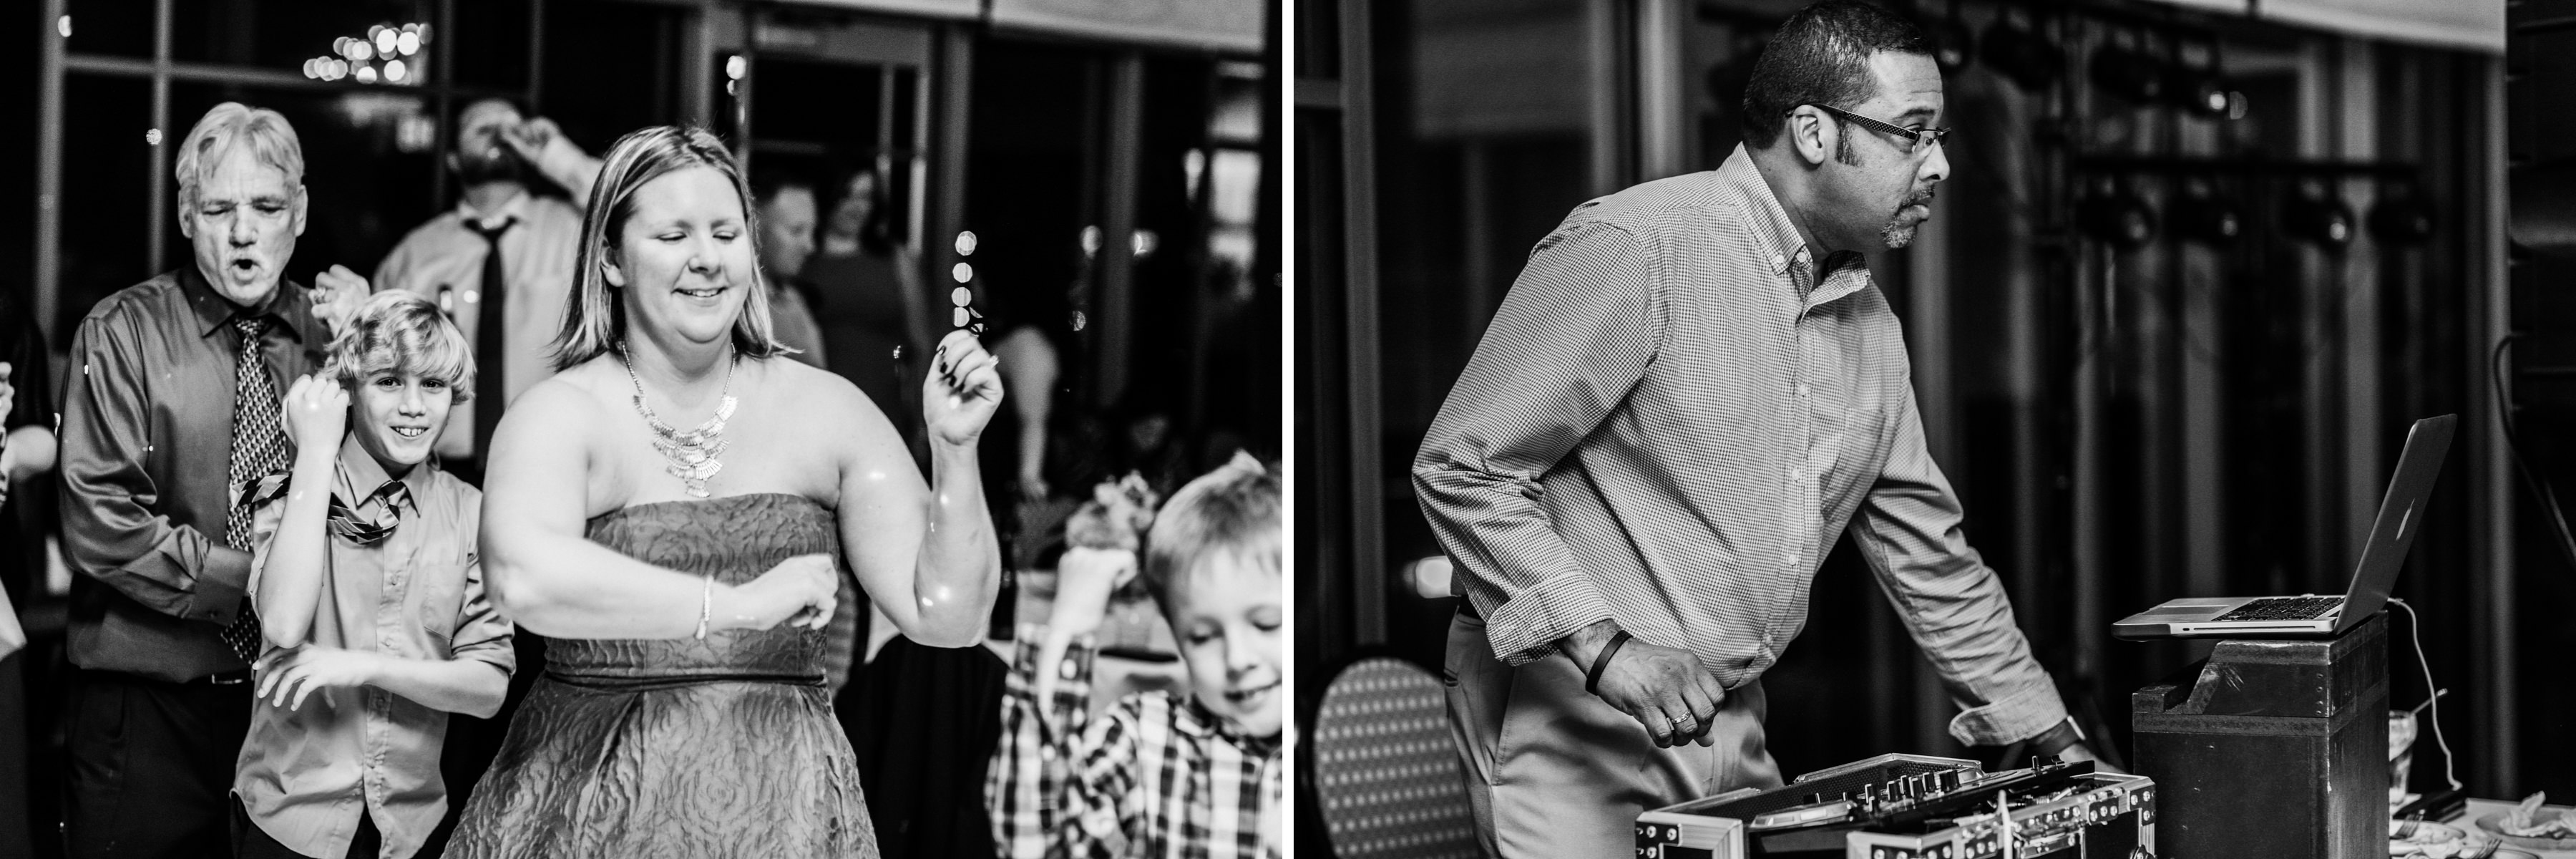 MAULDIN_WEDDING_MONTGOMERY_ALABAMA_WEDDING_PHOTOGRAPHY_125